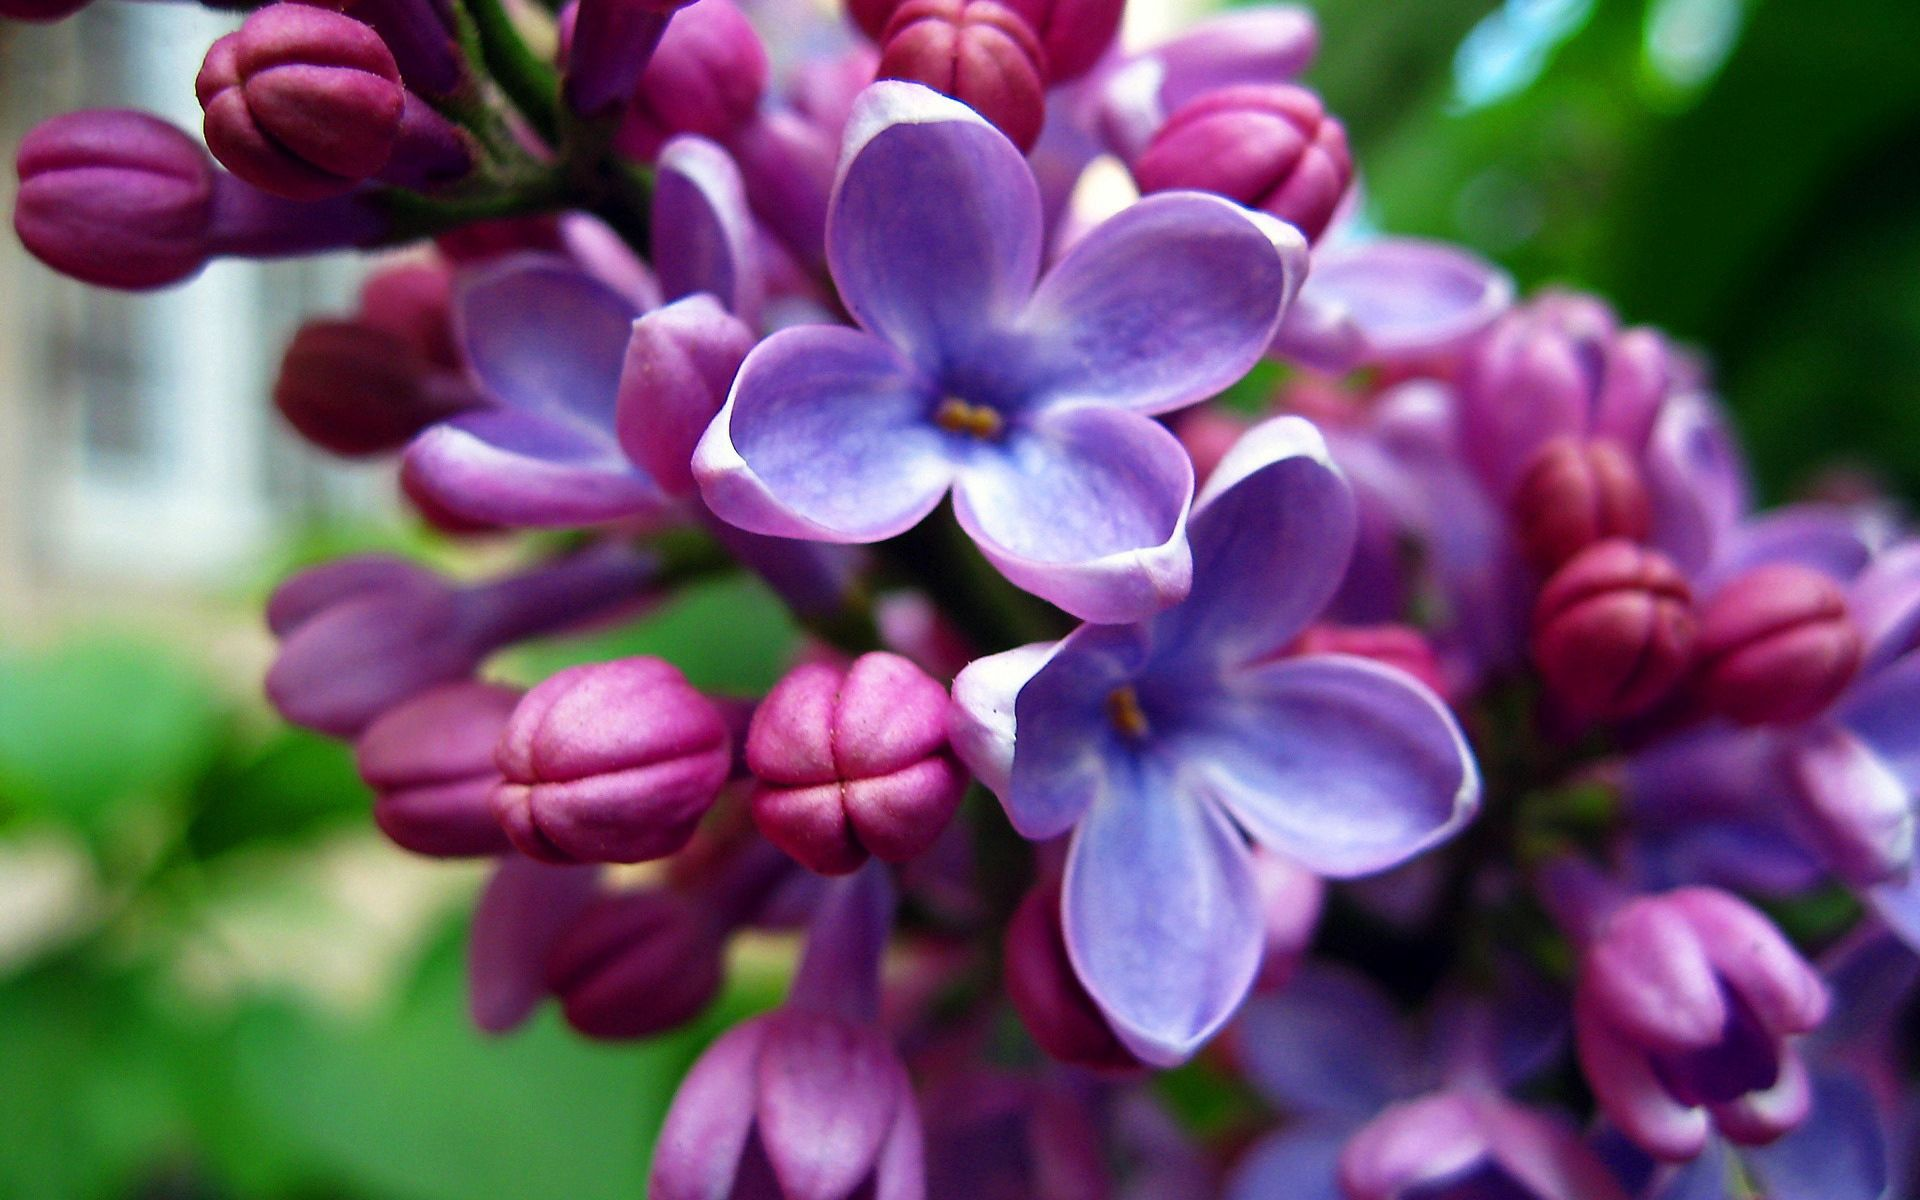 134278 download wallpaper Flowers, Lilac, Macro, Light, Bloom, Flowering, Light Coloured screensavers and pictures for free